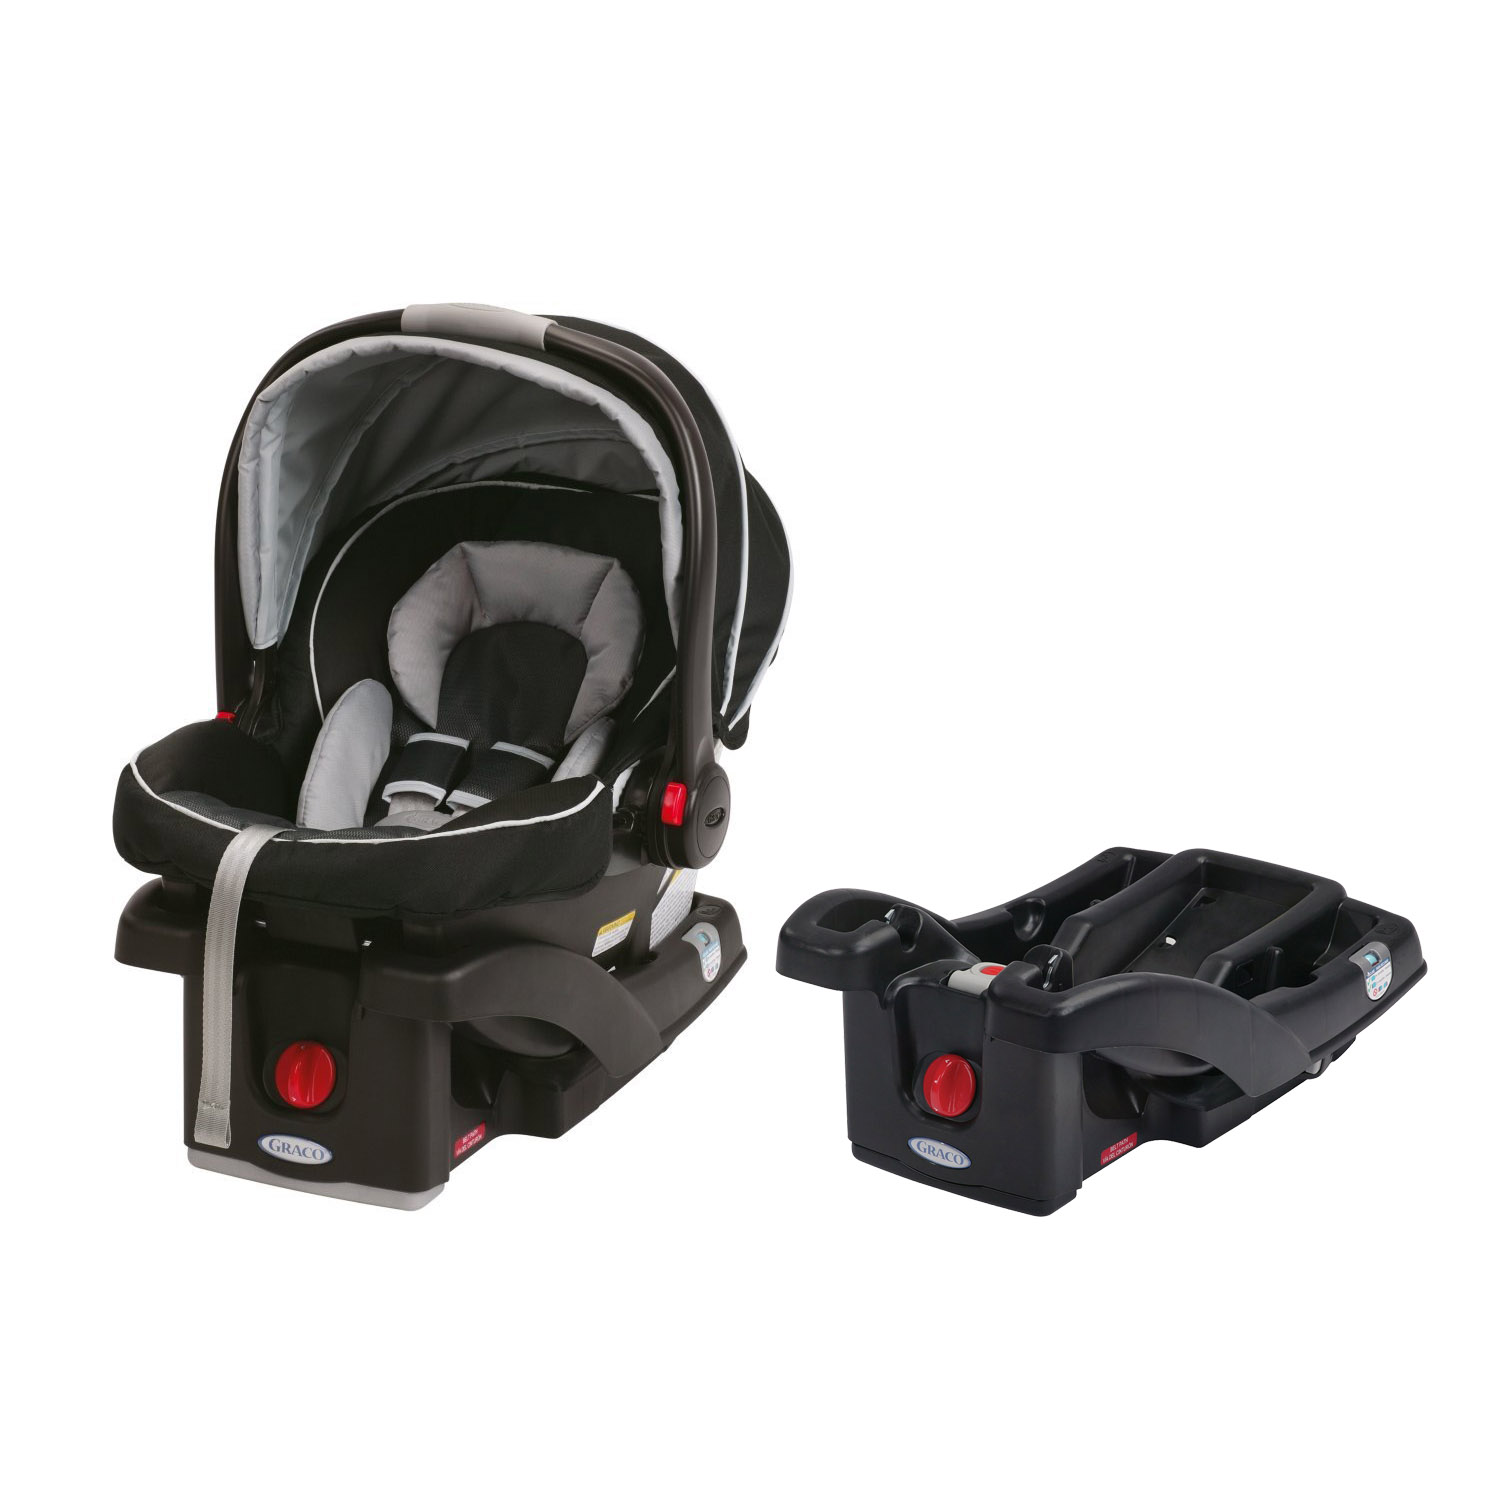 Graco SnugRide Click Connect 35 Baby Infant Car Seat, Gotham with Extra Base